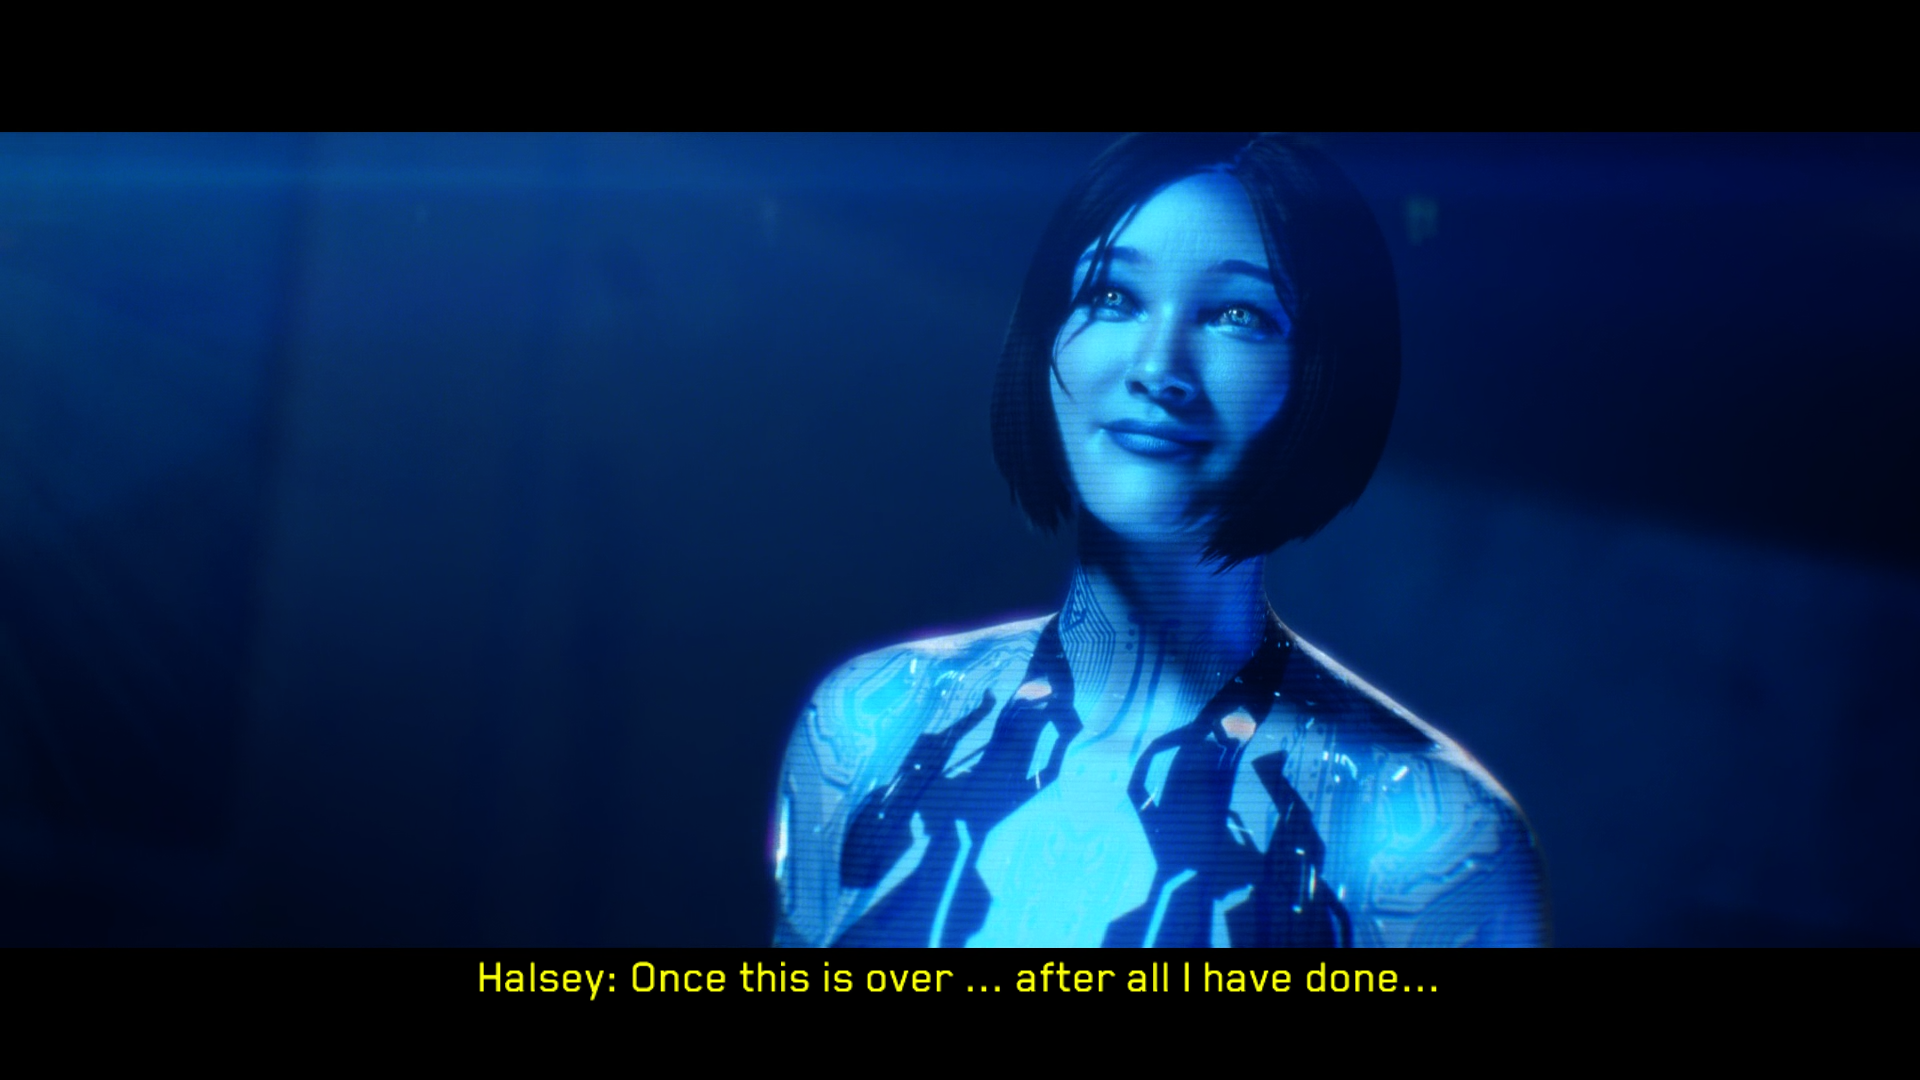 Cortana de halo desnuda anime womens